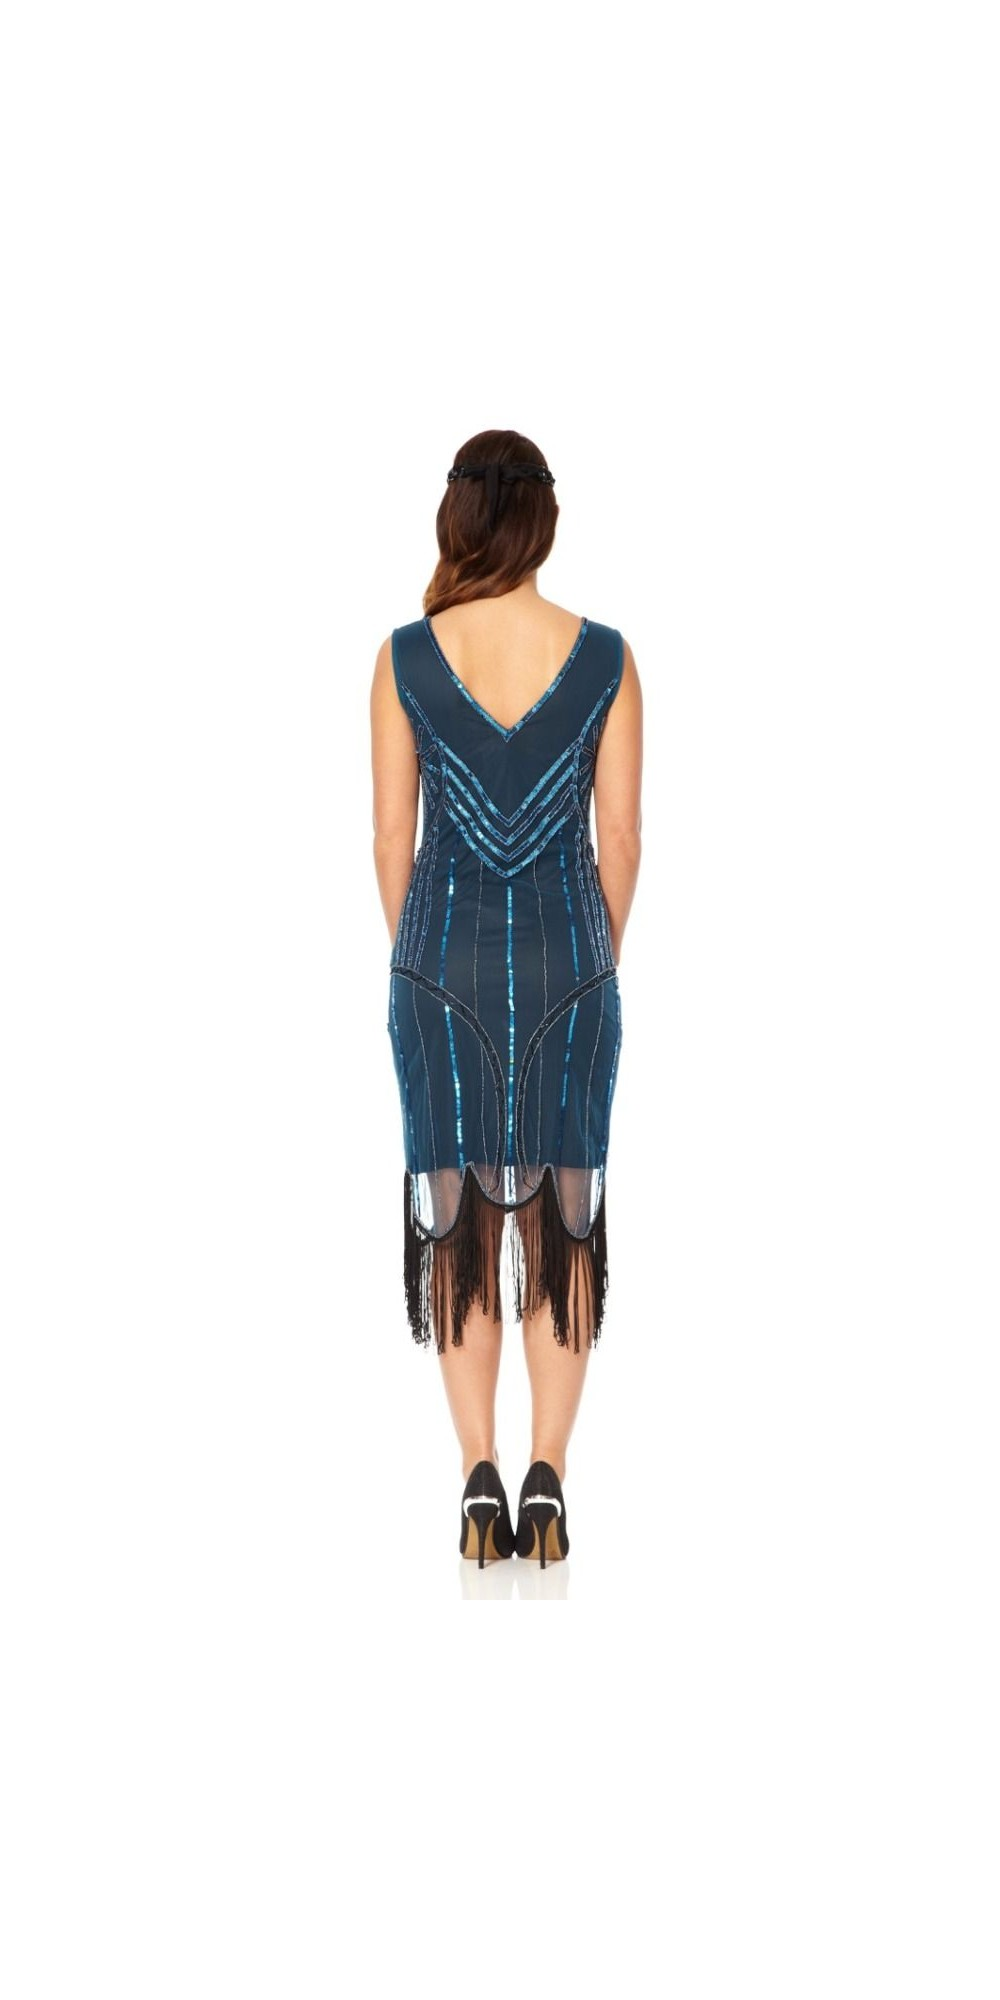 Roaring 20s Fringe Dress In Teal Black